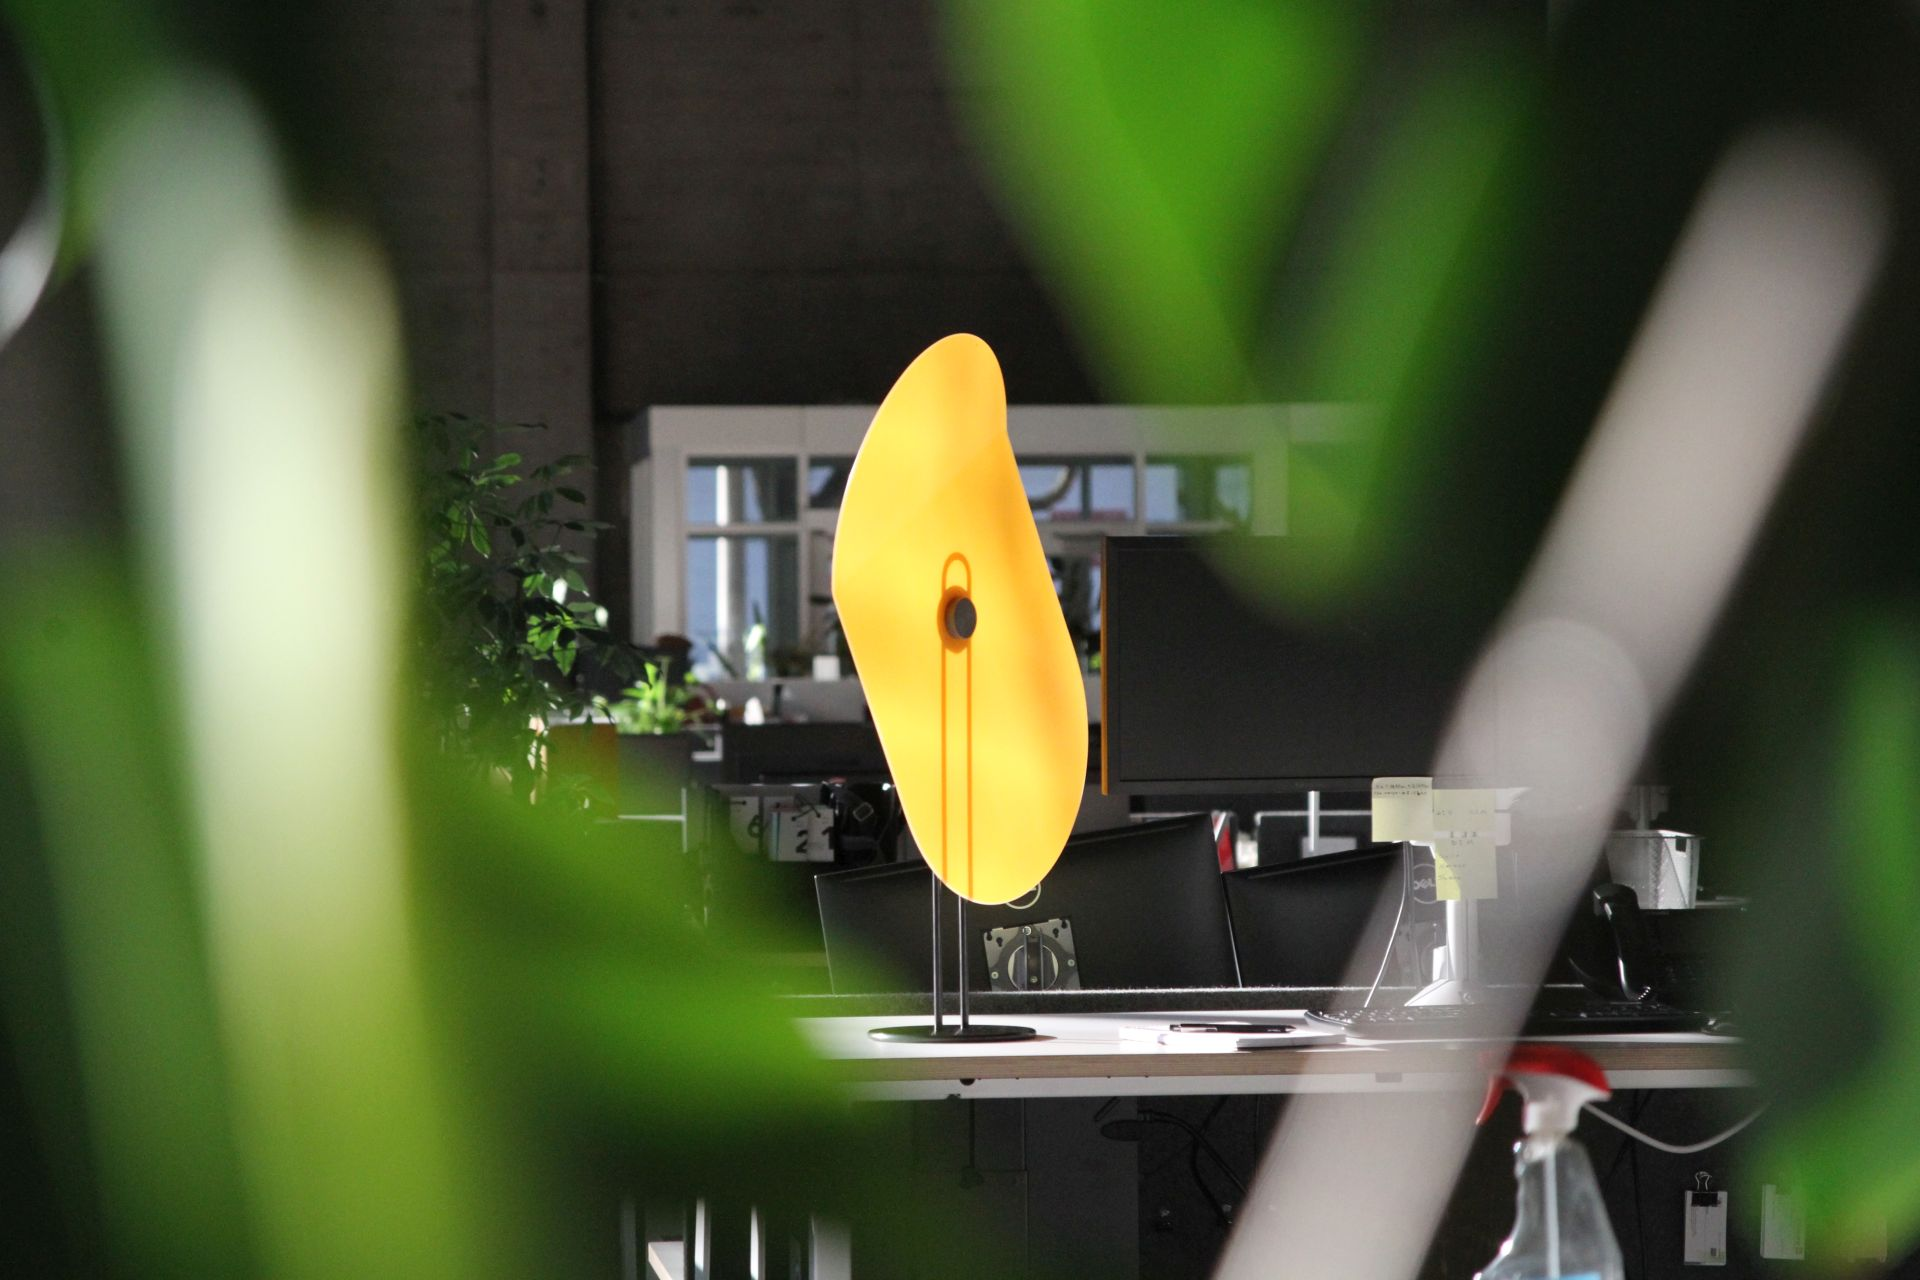 A large image of a glowing yellow Taskshade seen through some out of focus plants.